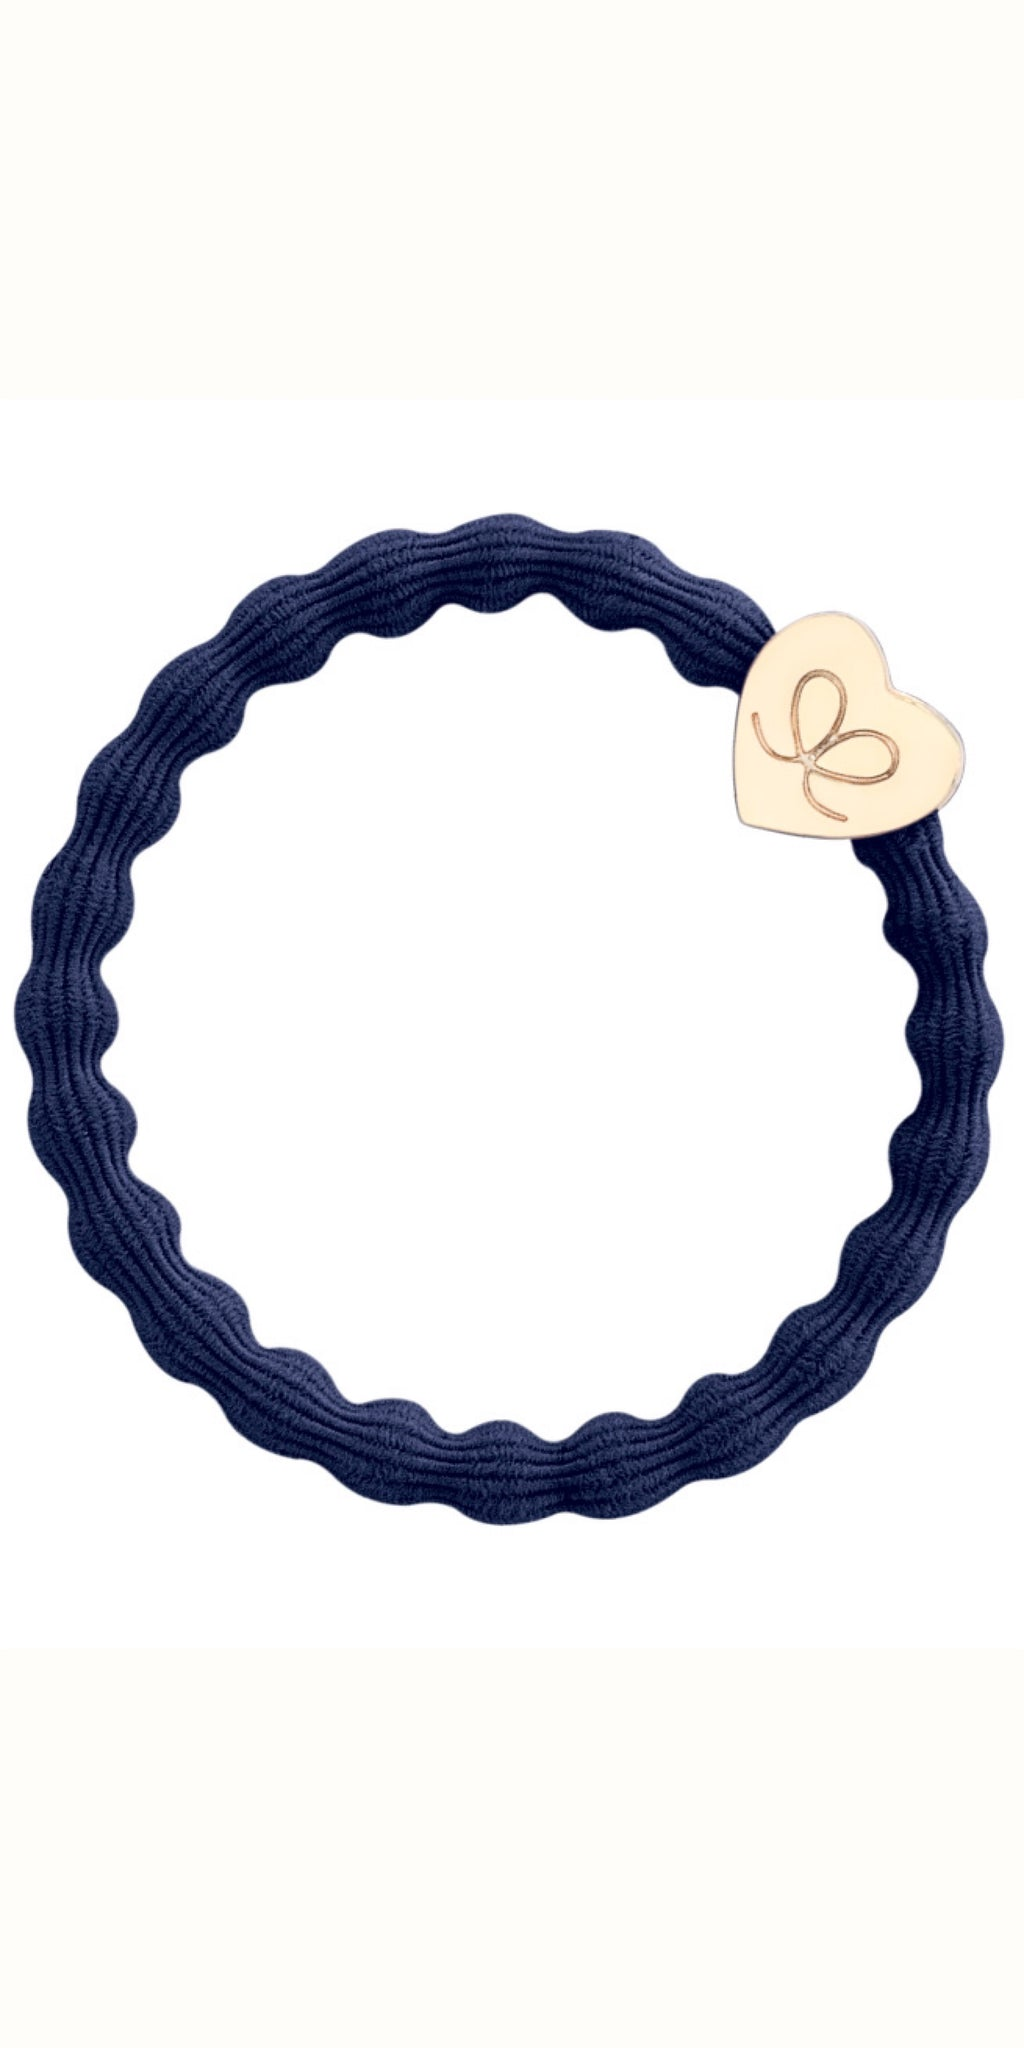 Gold heart on Navy